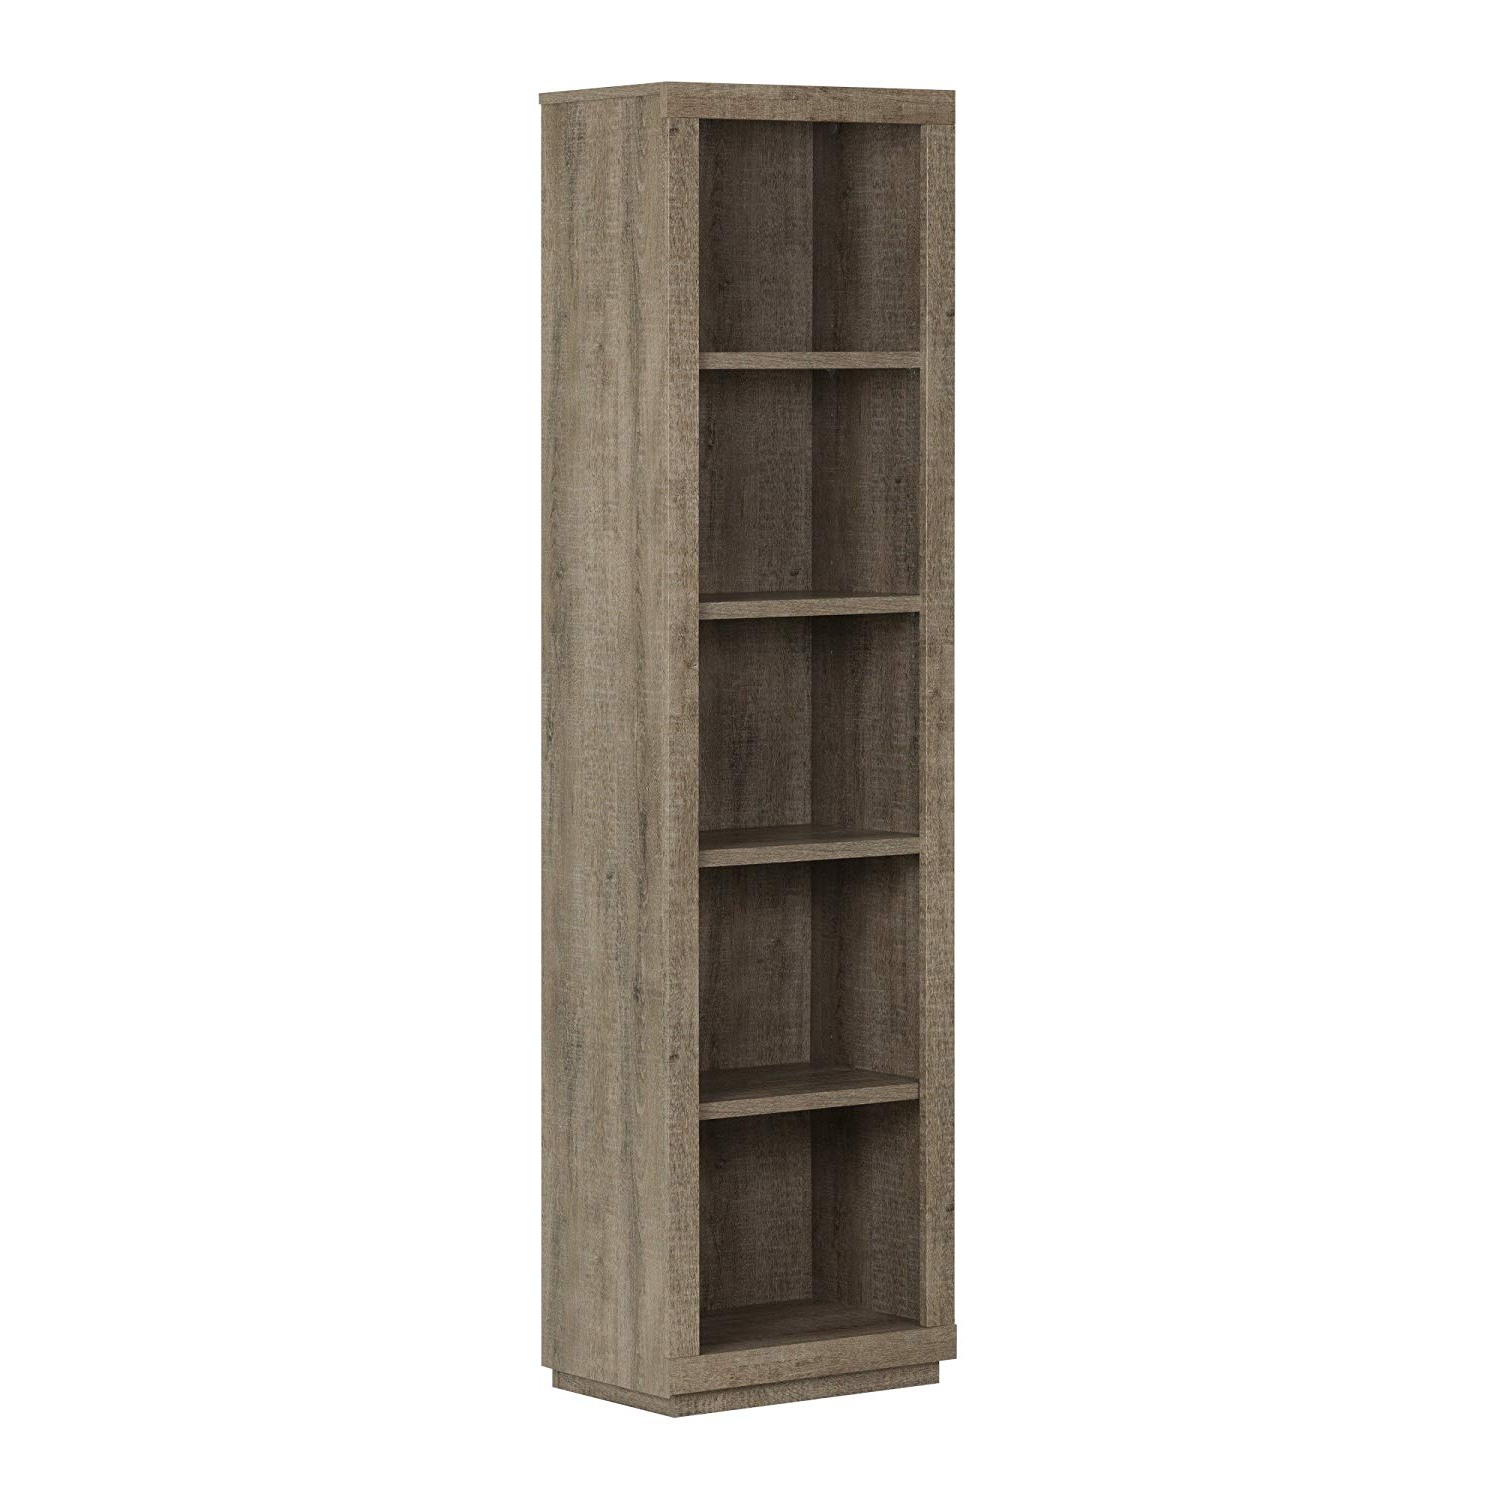 Most Up To Date Amazon: South Shore Narrow 5 Shelf Storage Bookcase Inside Narrow Profile Standard Cube Bookcases (View 4 of 20)